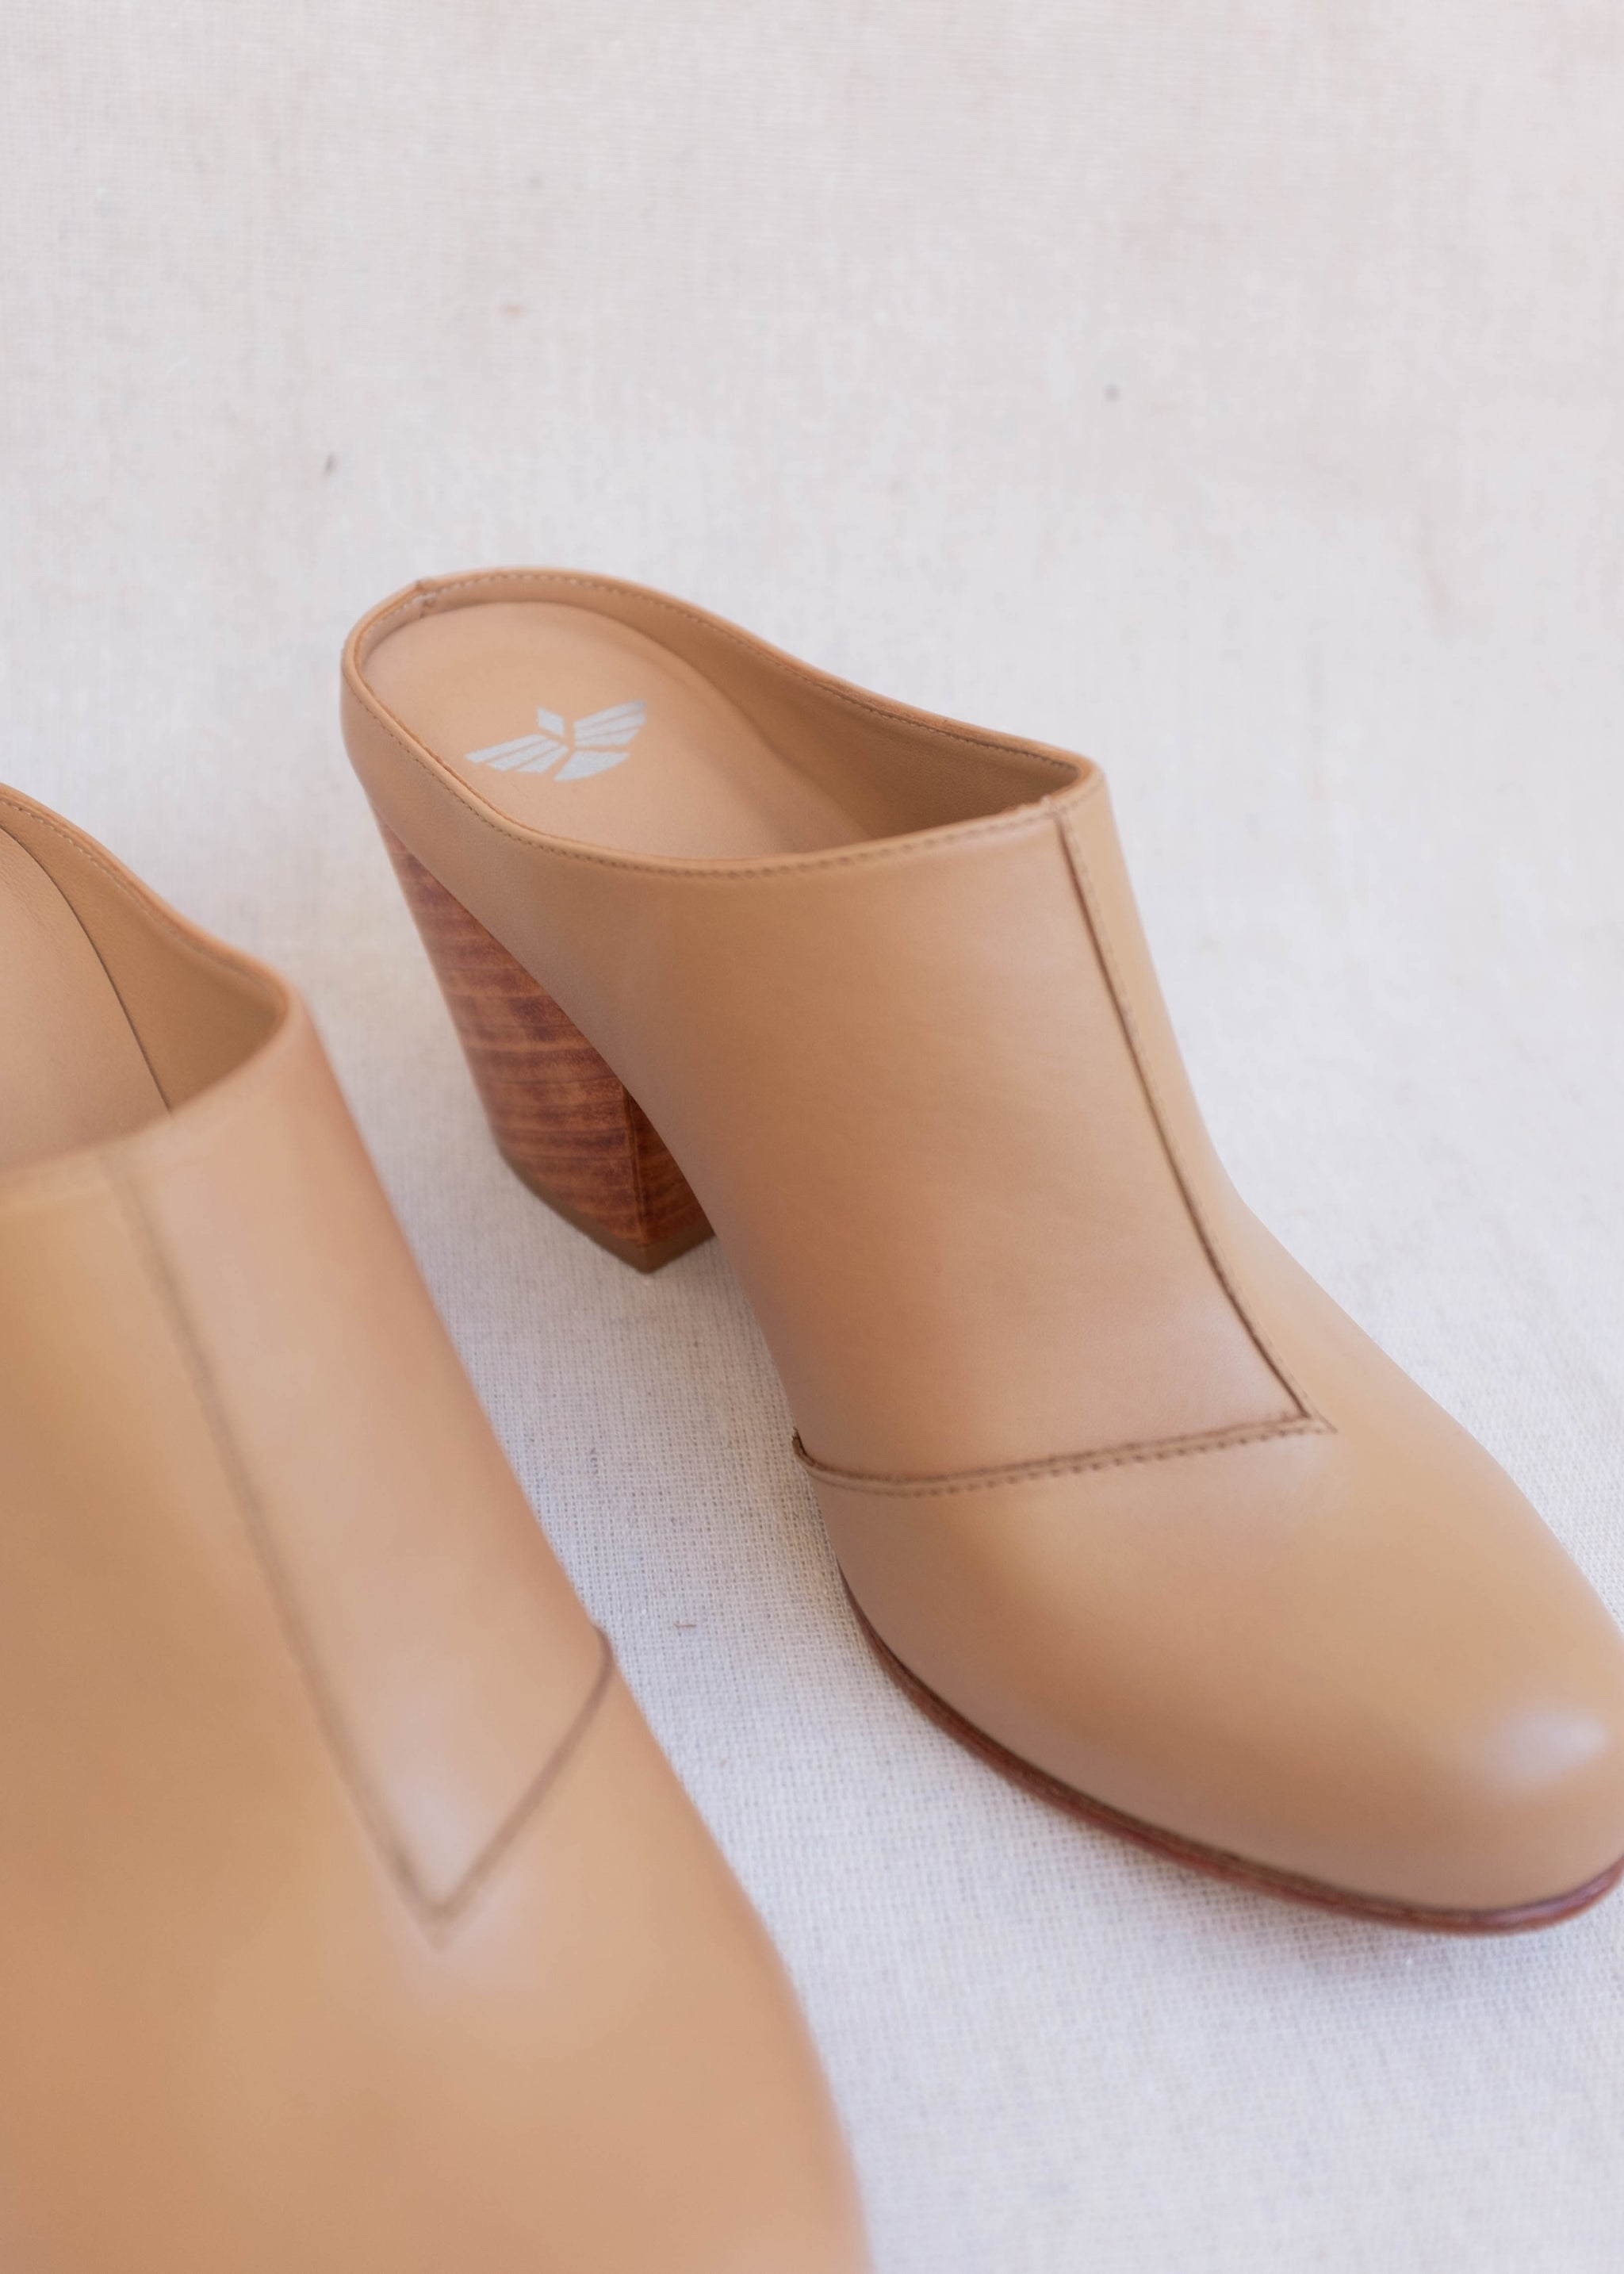 Detail view of light brown leather mule with large wooden heel.